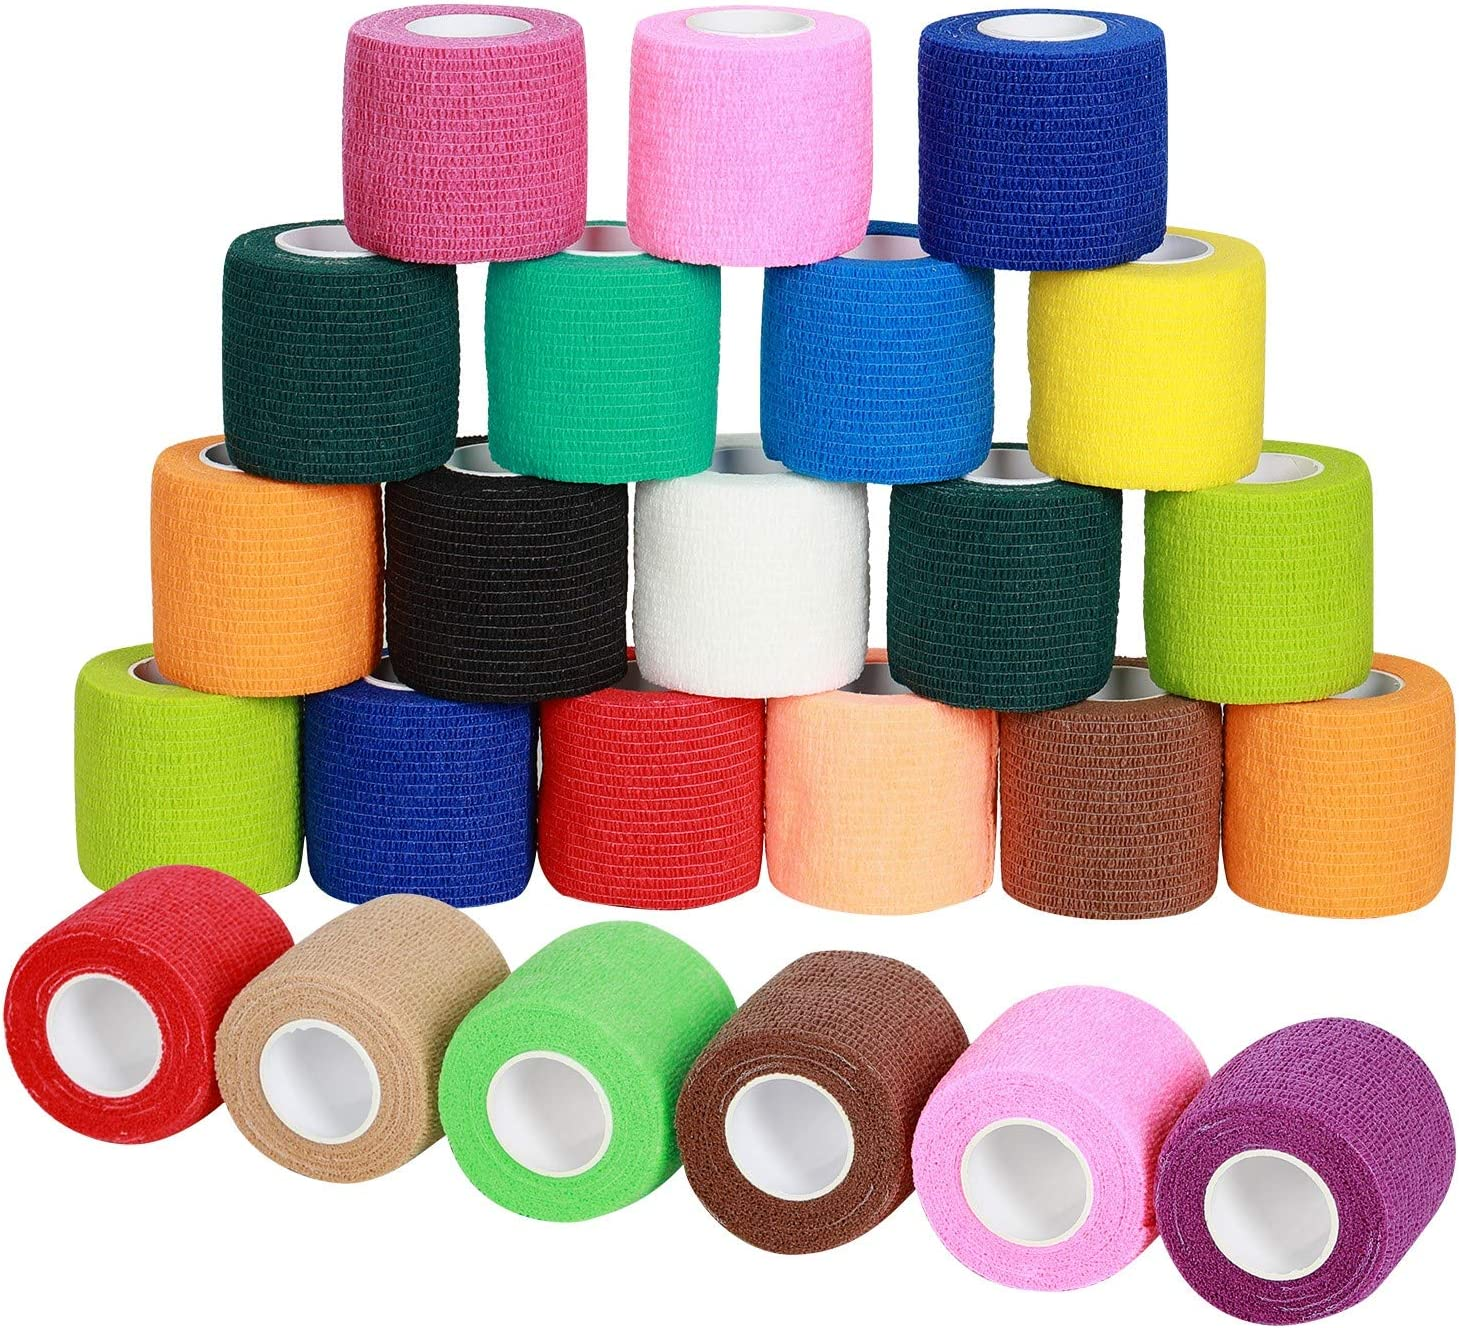 LDS-JL 【18-Pack 2 inch Sale self Adhesive New products world's highest quality popular Vet wrap Bandage